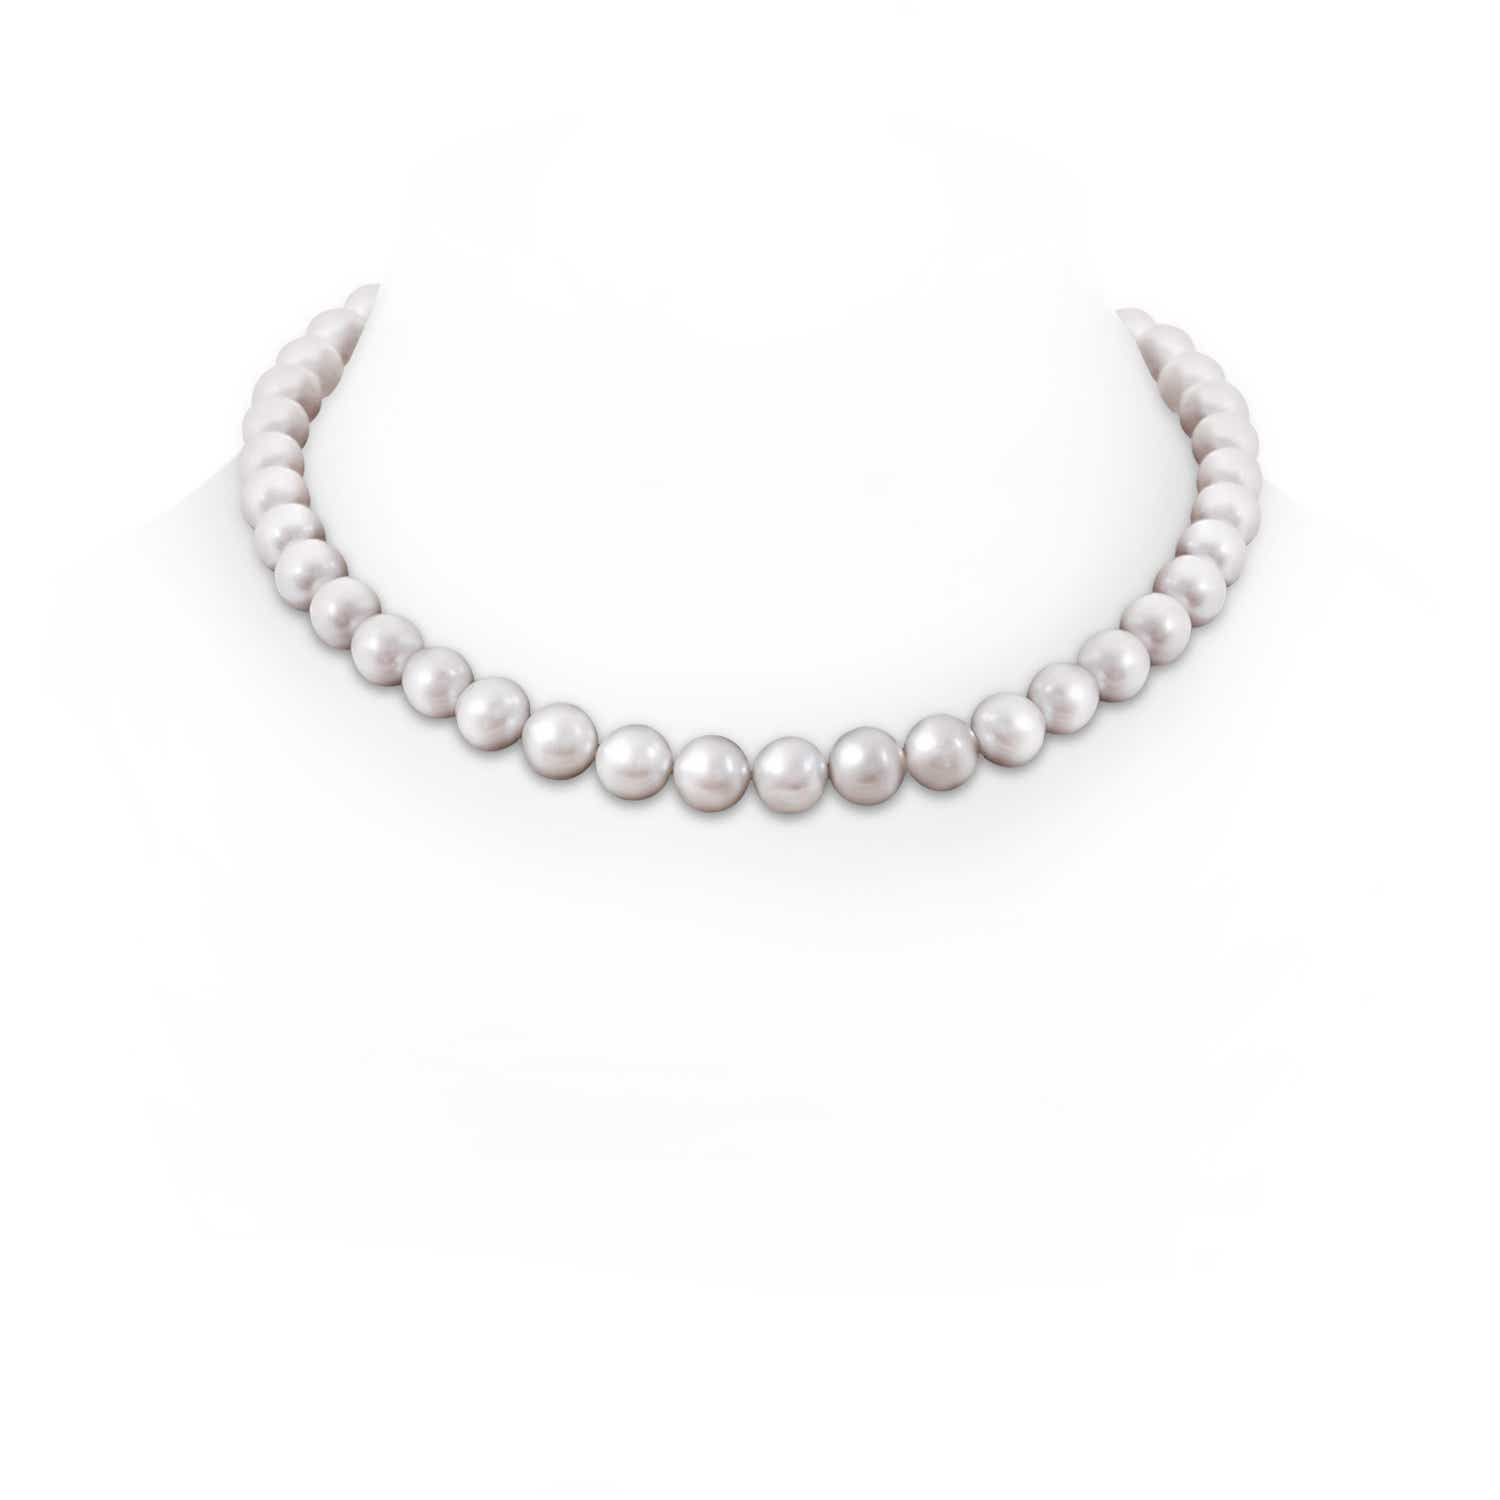 10-11mm, 18 Classic Freshwater Cultured Pearl Necklace